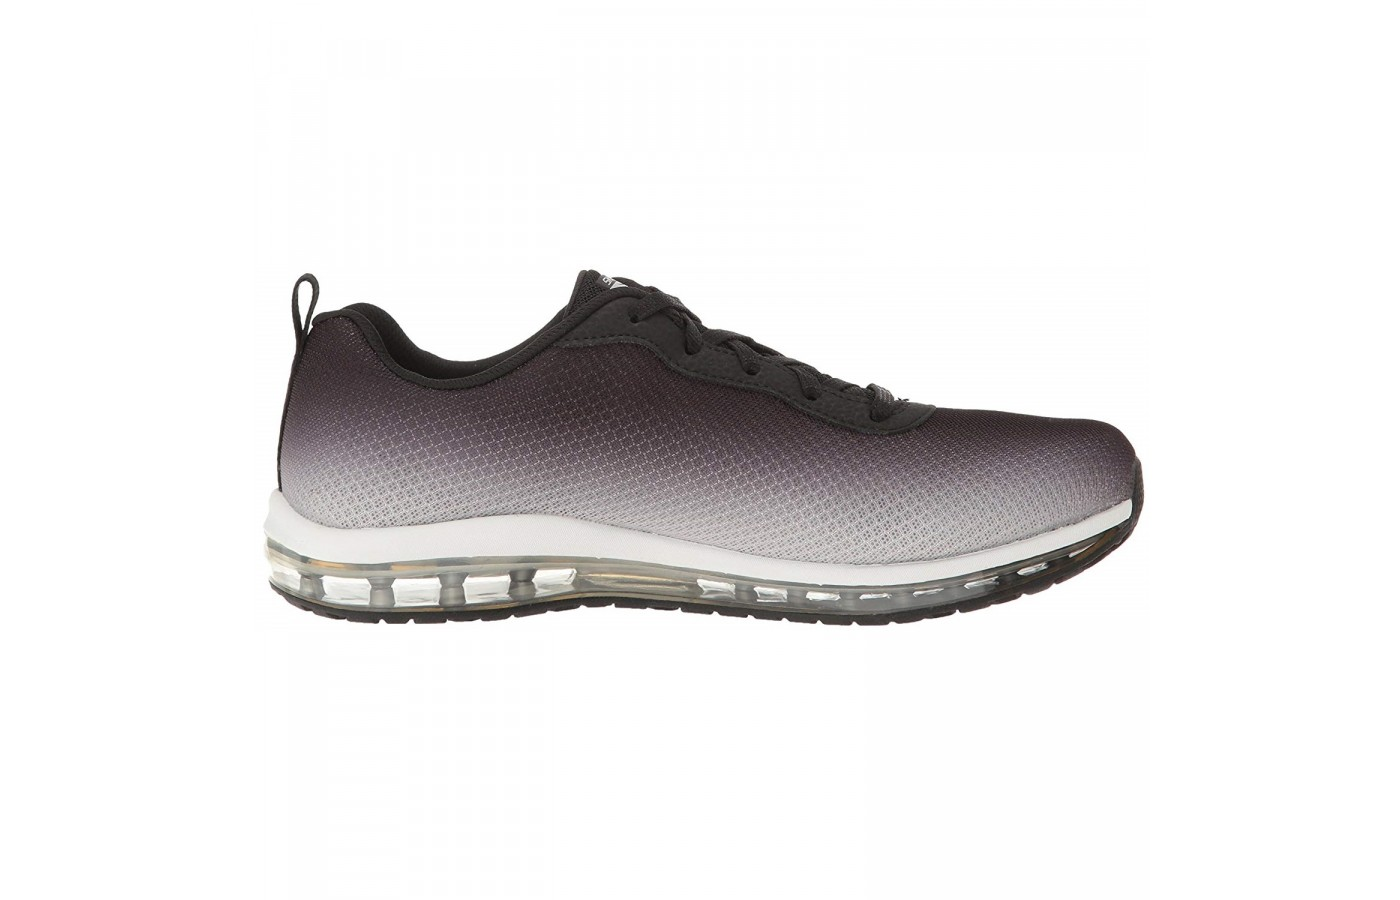 The Skechers Skech Air offers a padded collar and tongue for comfort and support around the ankle.